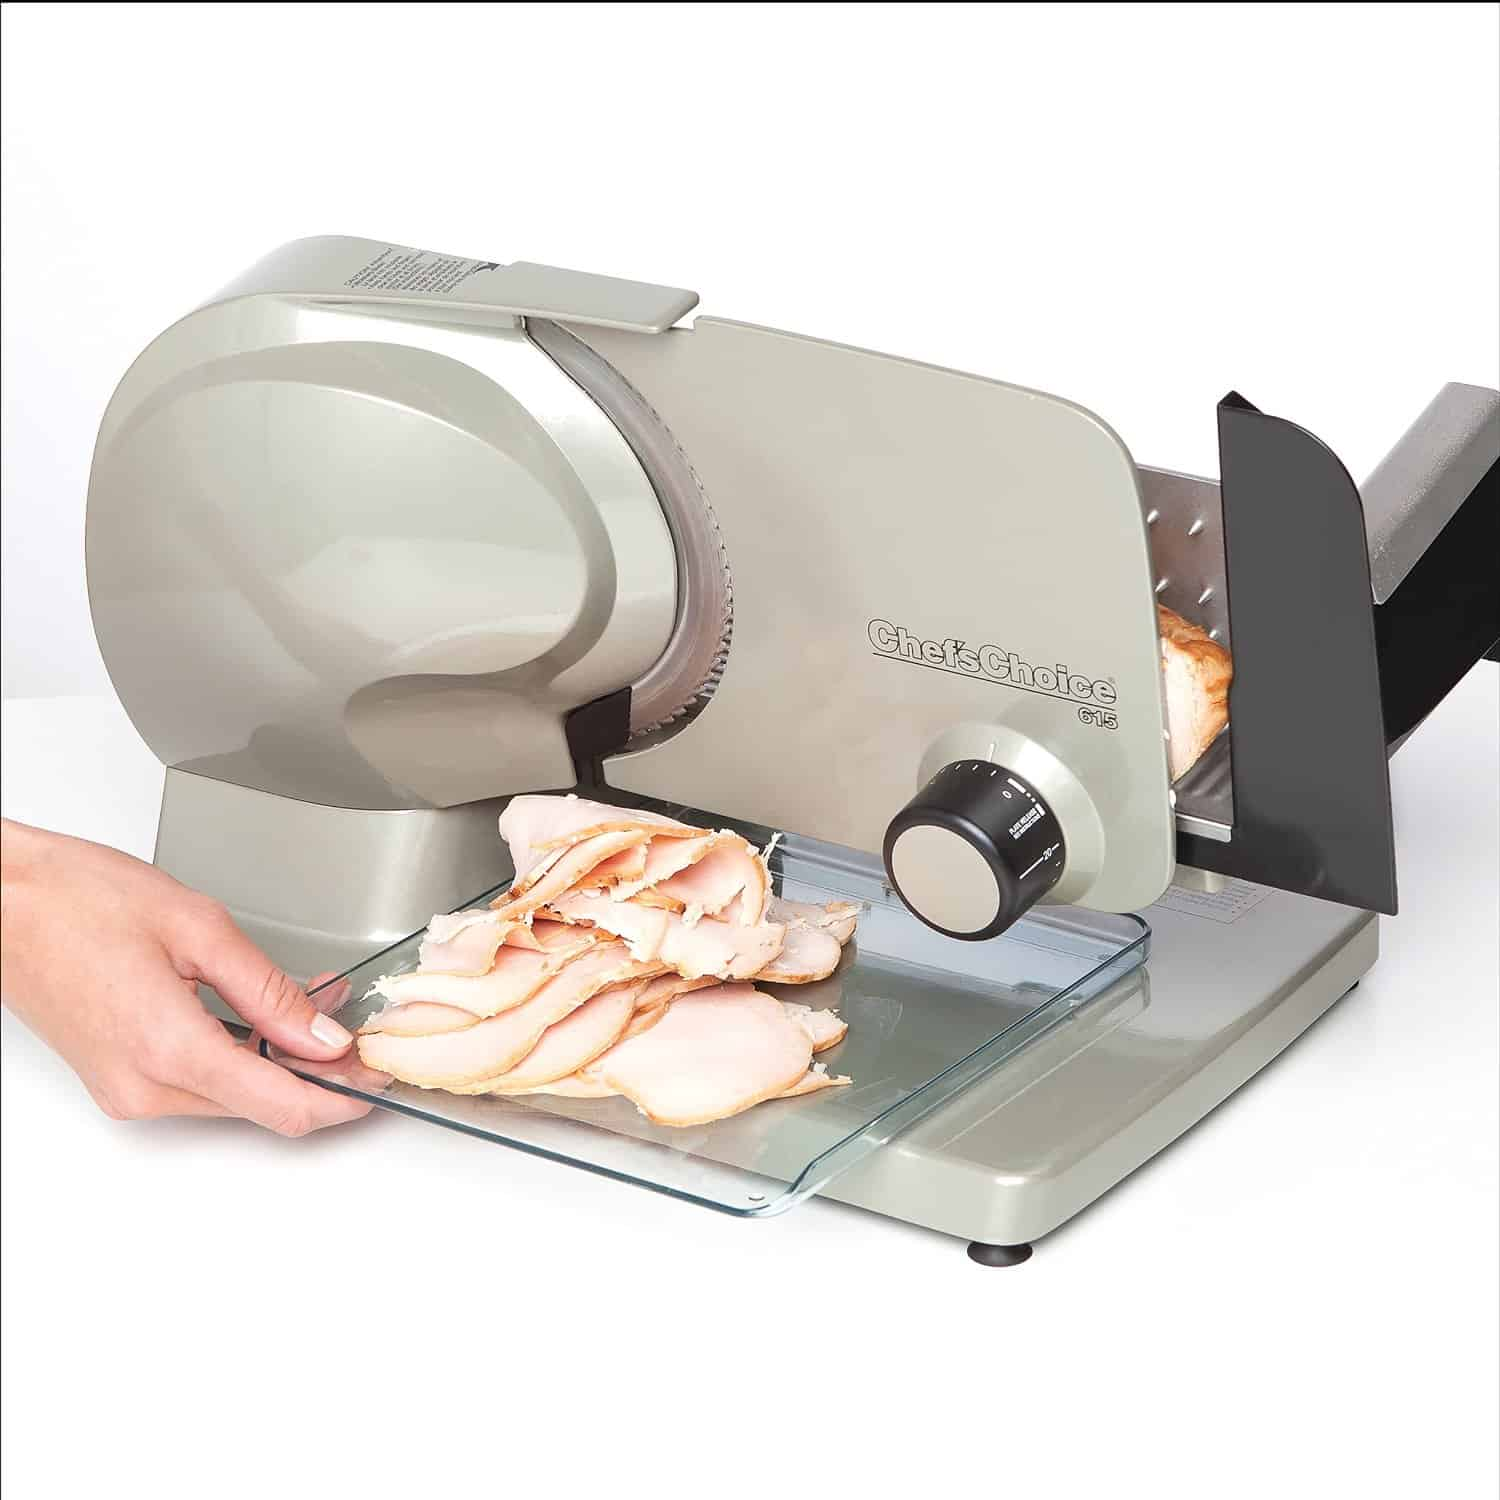 Buying Made Easy With Our Meat Slicer Reviews - Appliances Reviewed